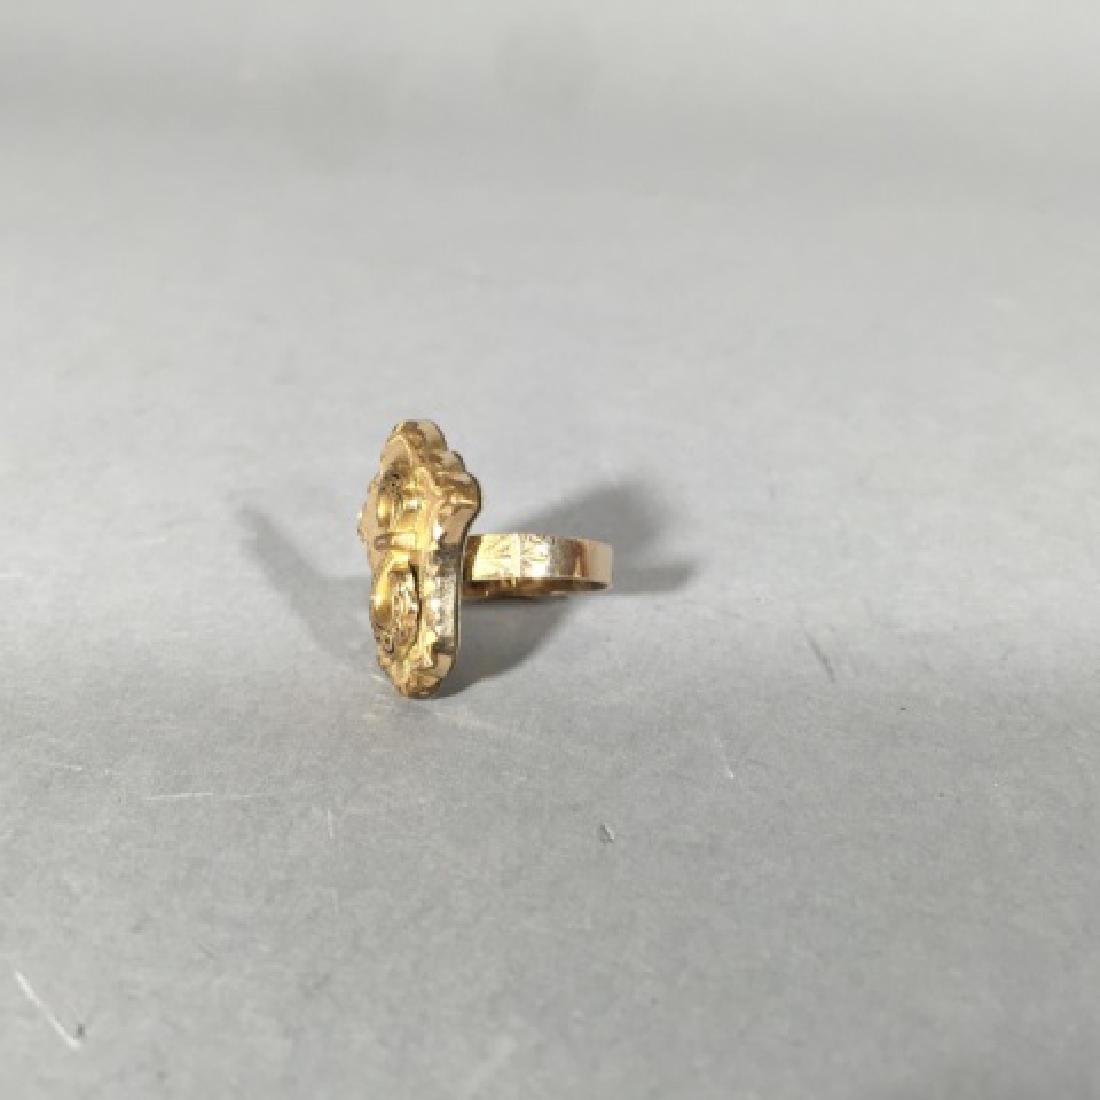 Antique 19th C Victorian Chased Yellow Gold Ring - 5